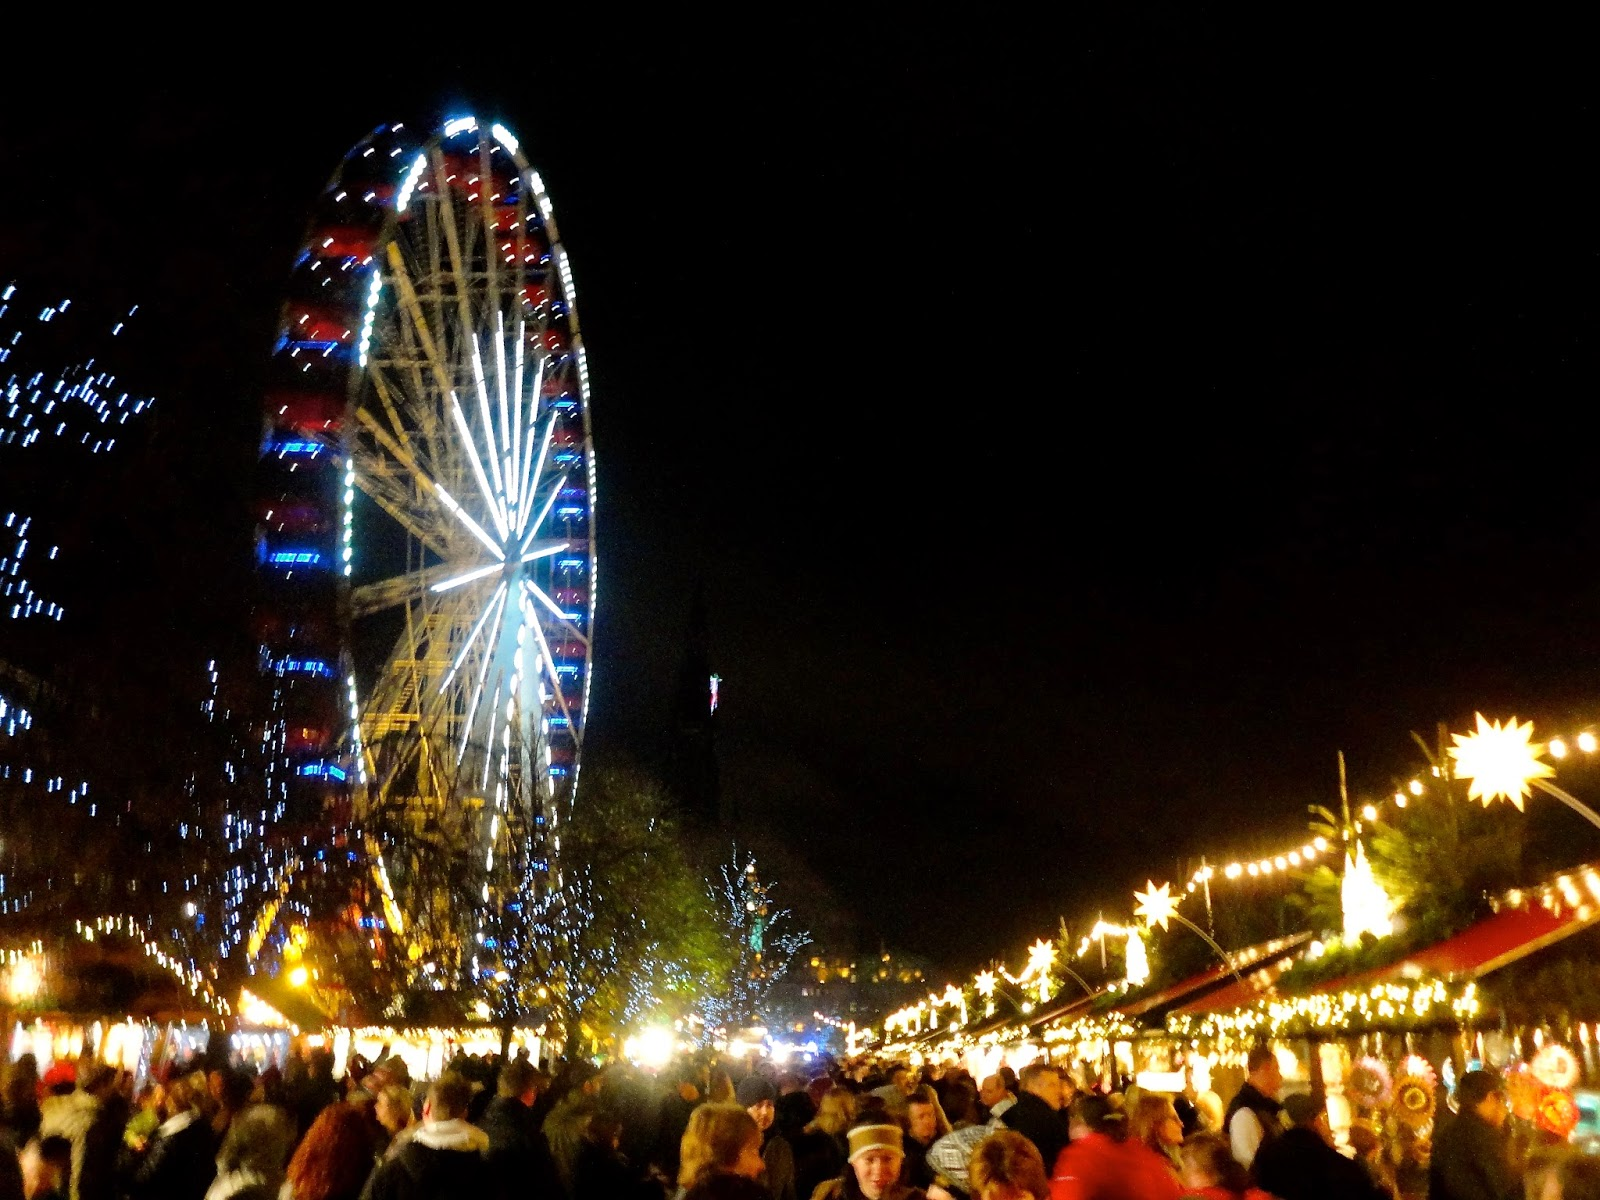 Ferris wheel in Edinburgh Winter Wonderland at Christmas in Princes Street Gardens